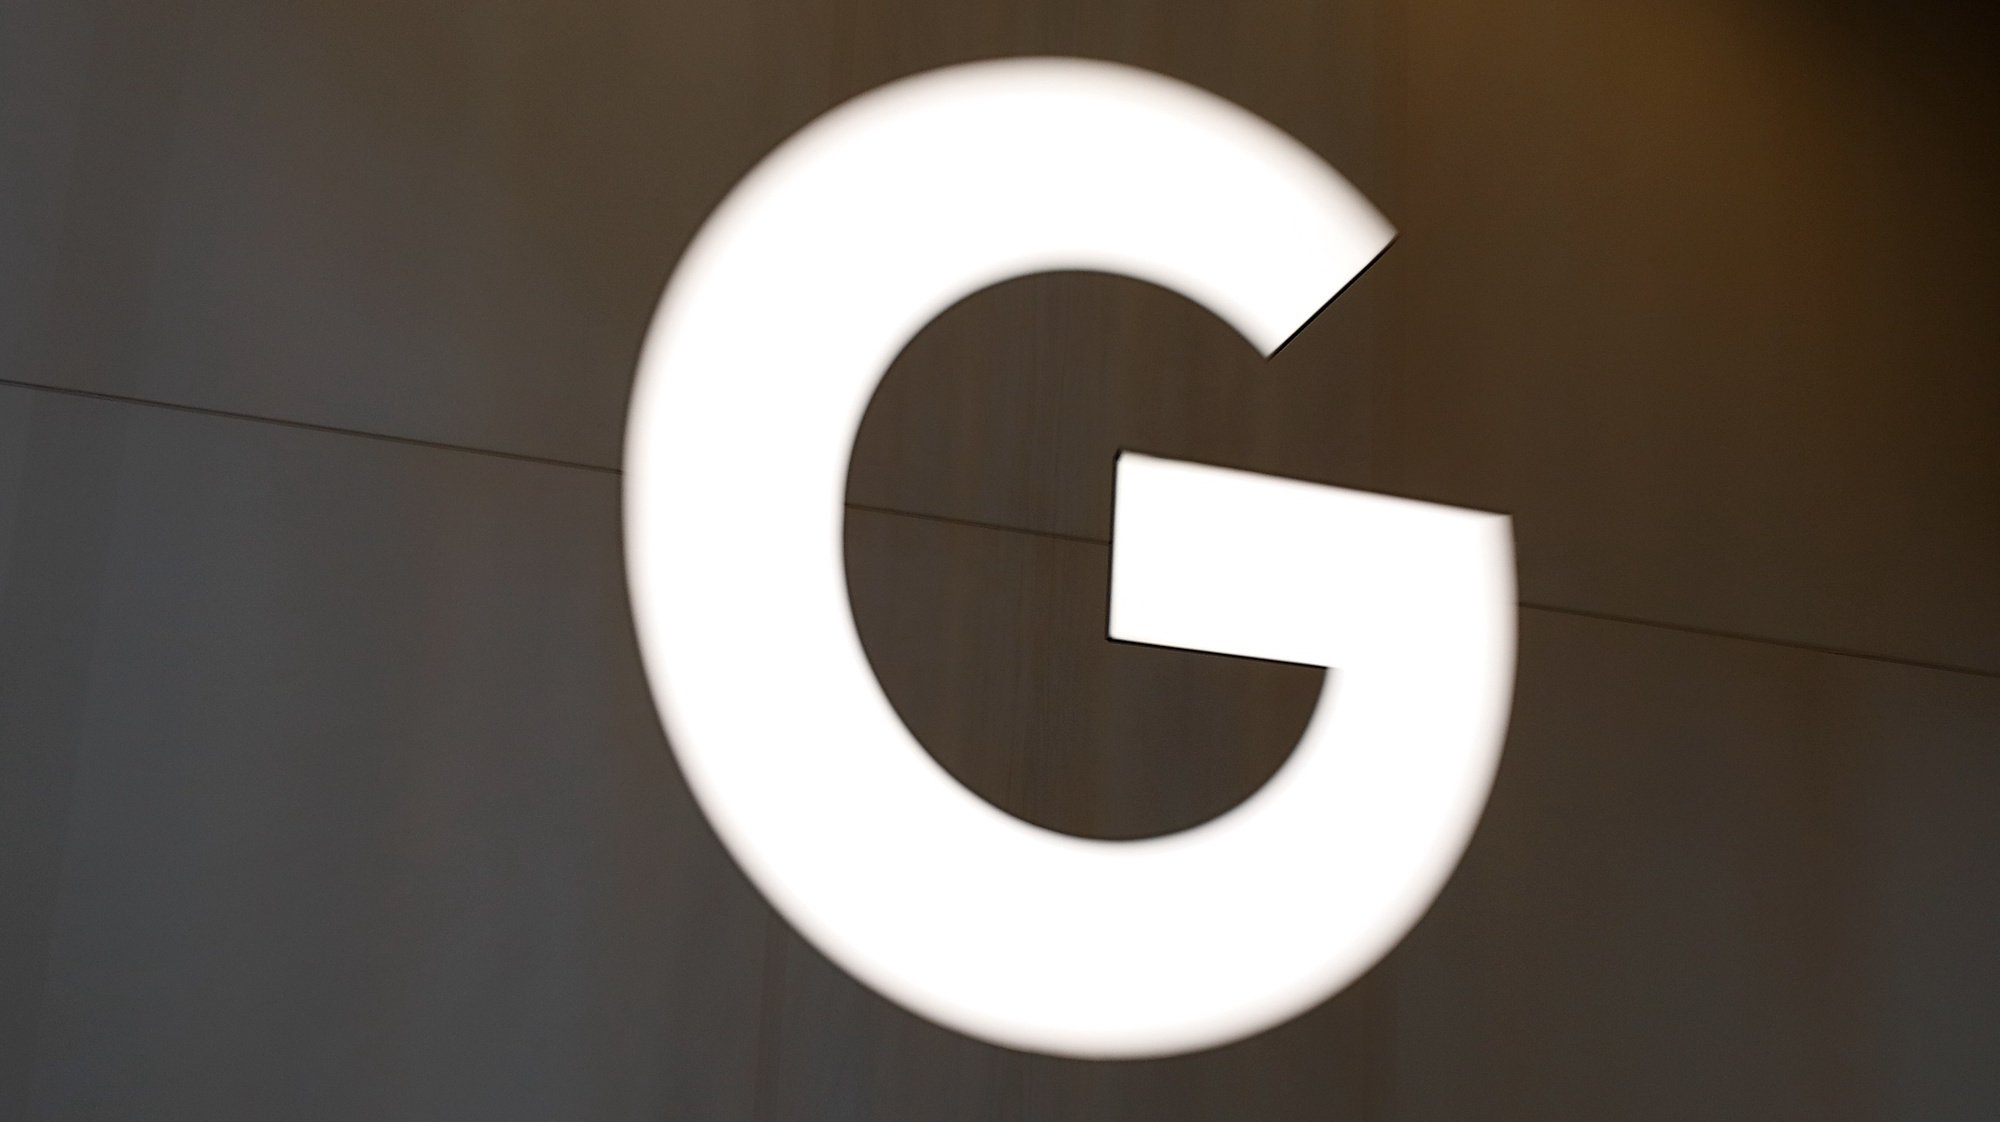 epa09281593 A view of the Google 'G' sign inside the Google retail store in the Chelsea neighborhood of New York, New York, USA, 17 June 2021. The Google Store, which opened today, will allow customers to browse through and buy an extensive selection of products made by Google, ranging from Pixel phones, Nest products, Fitbit devices and Pixelbooks.  EPA/JASON SZENES